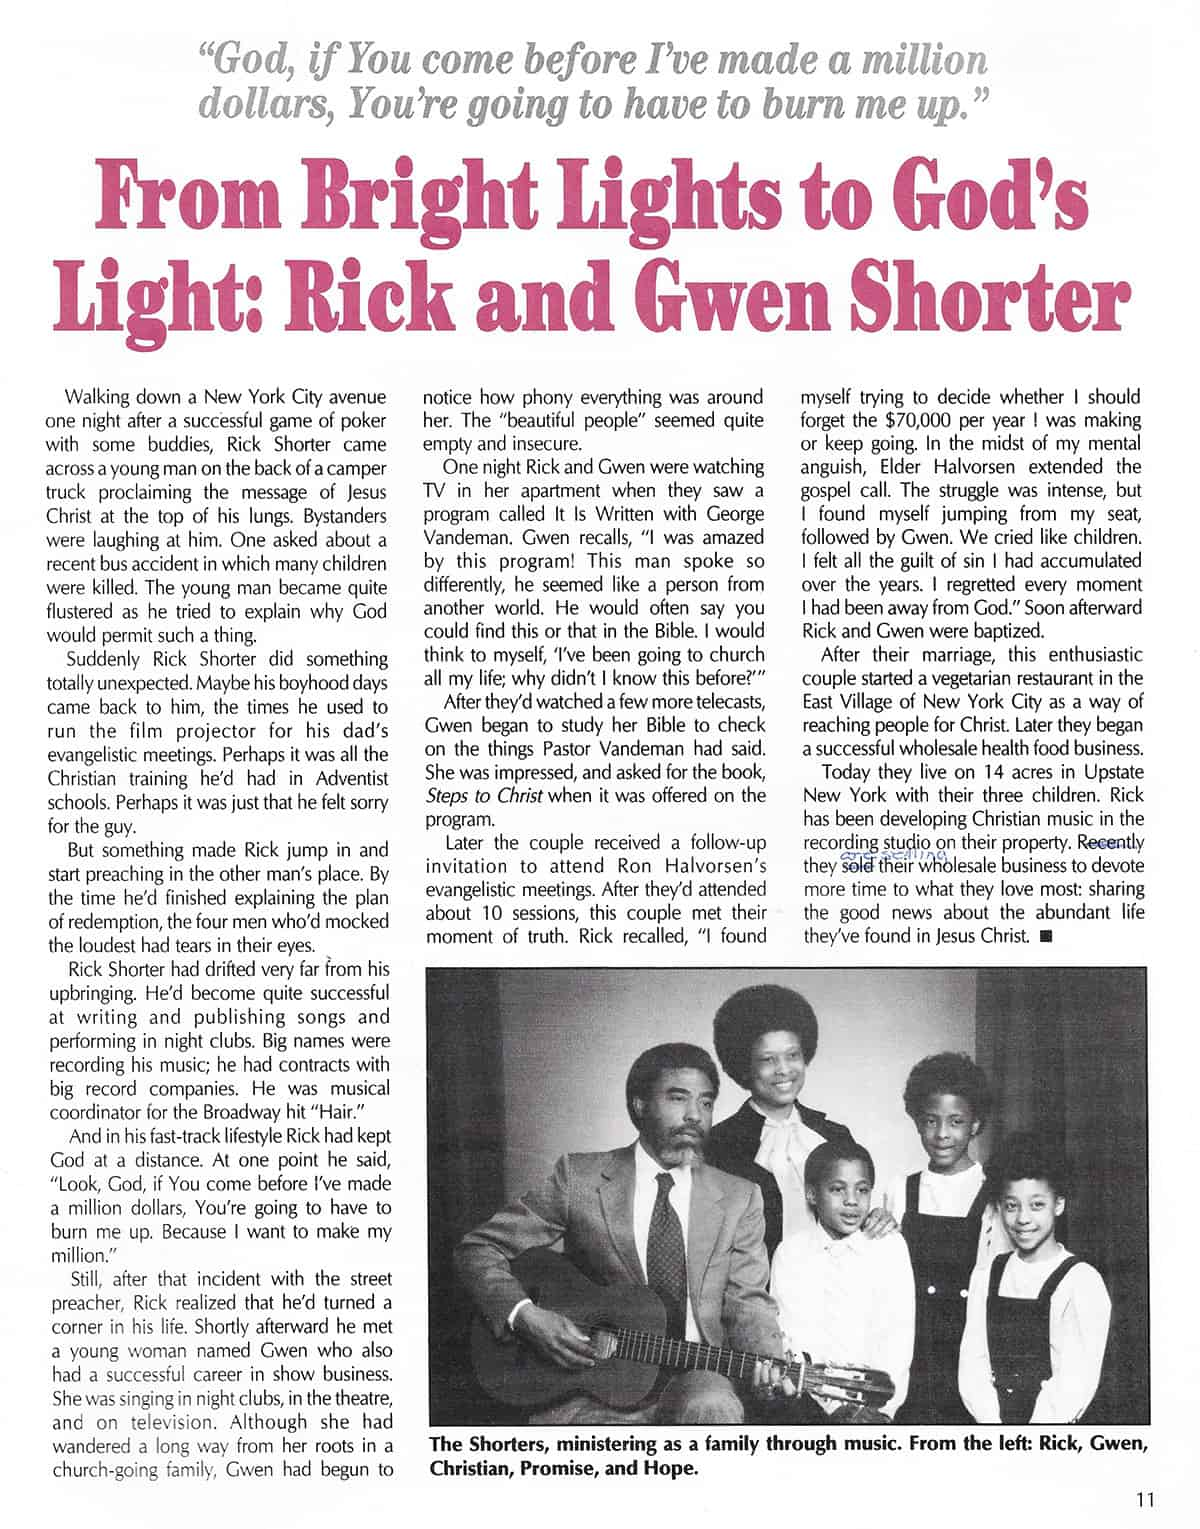 From Bright Lights to God's Light